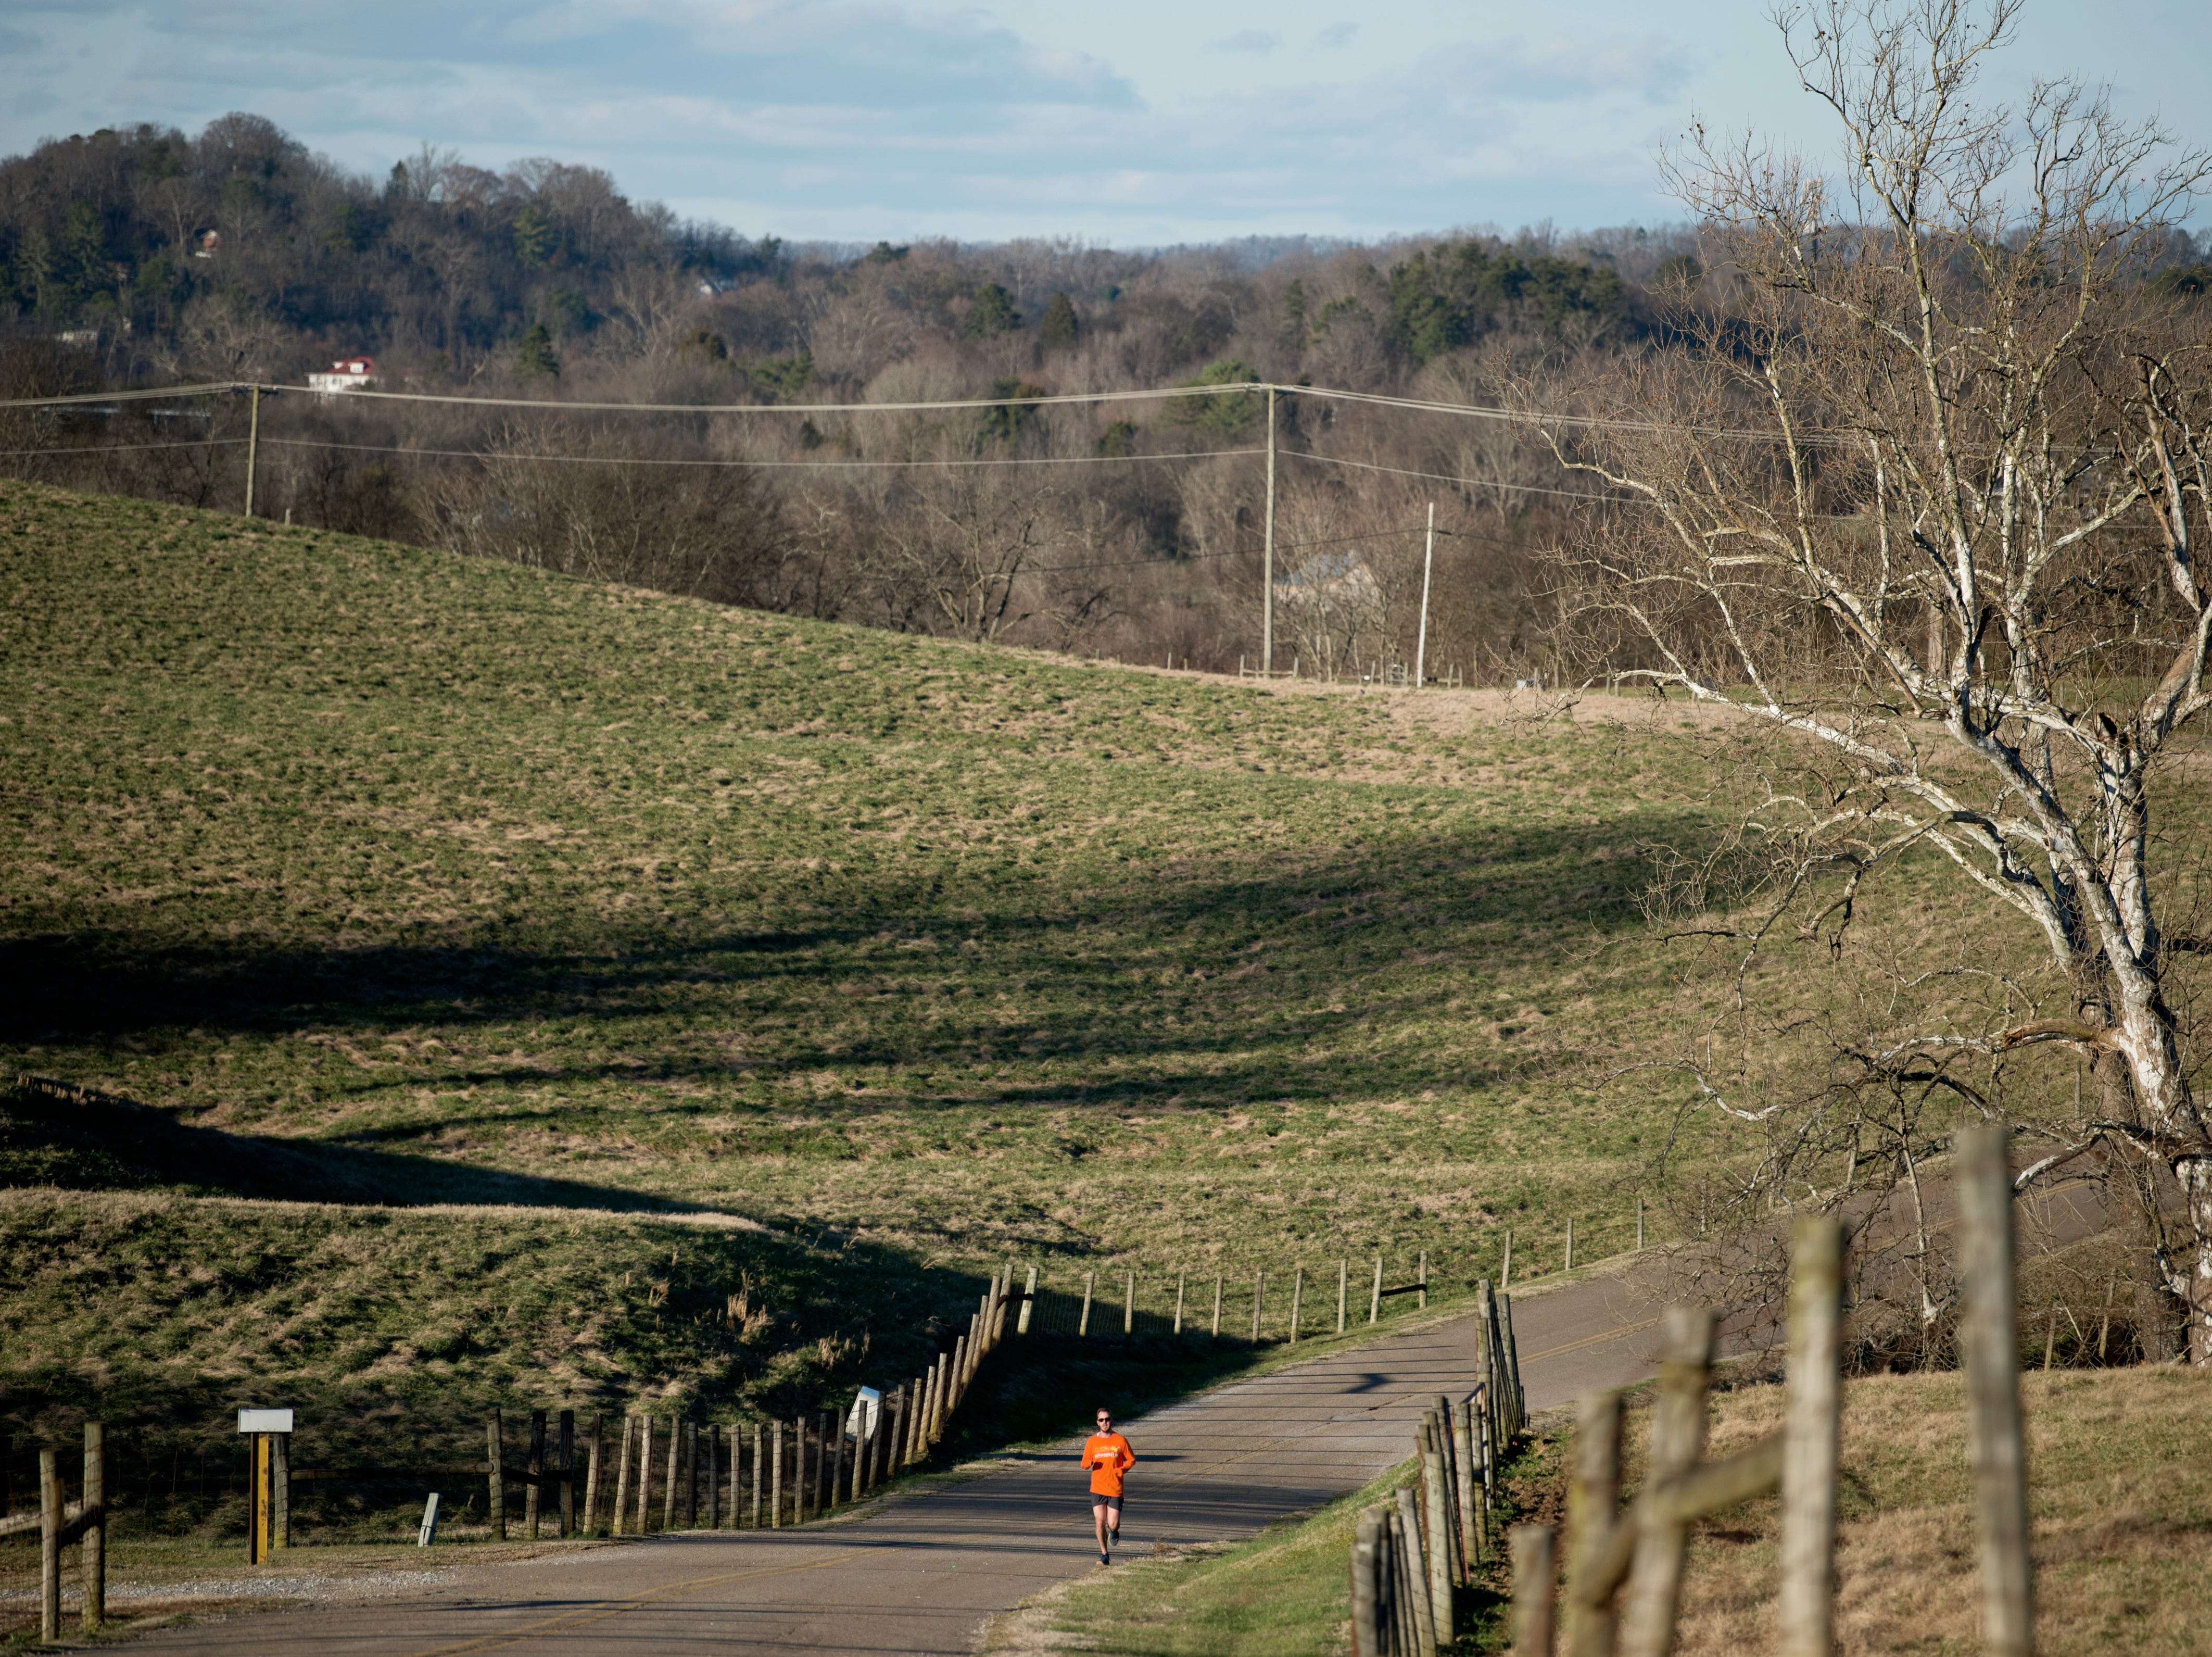 Casey Holbrook, of Knoxville, jogs down Kreis Road in Knoxville, Tennessee on Wednesday, January 9, 2019. Holbrook said he comes to run on Kreis Road often for the scenic views and cattle grazing in the fields.